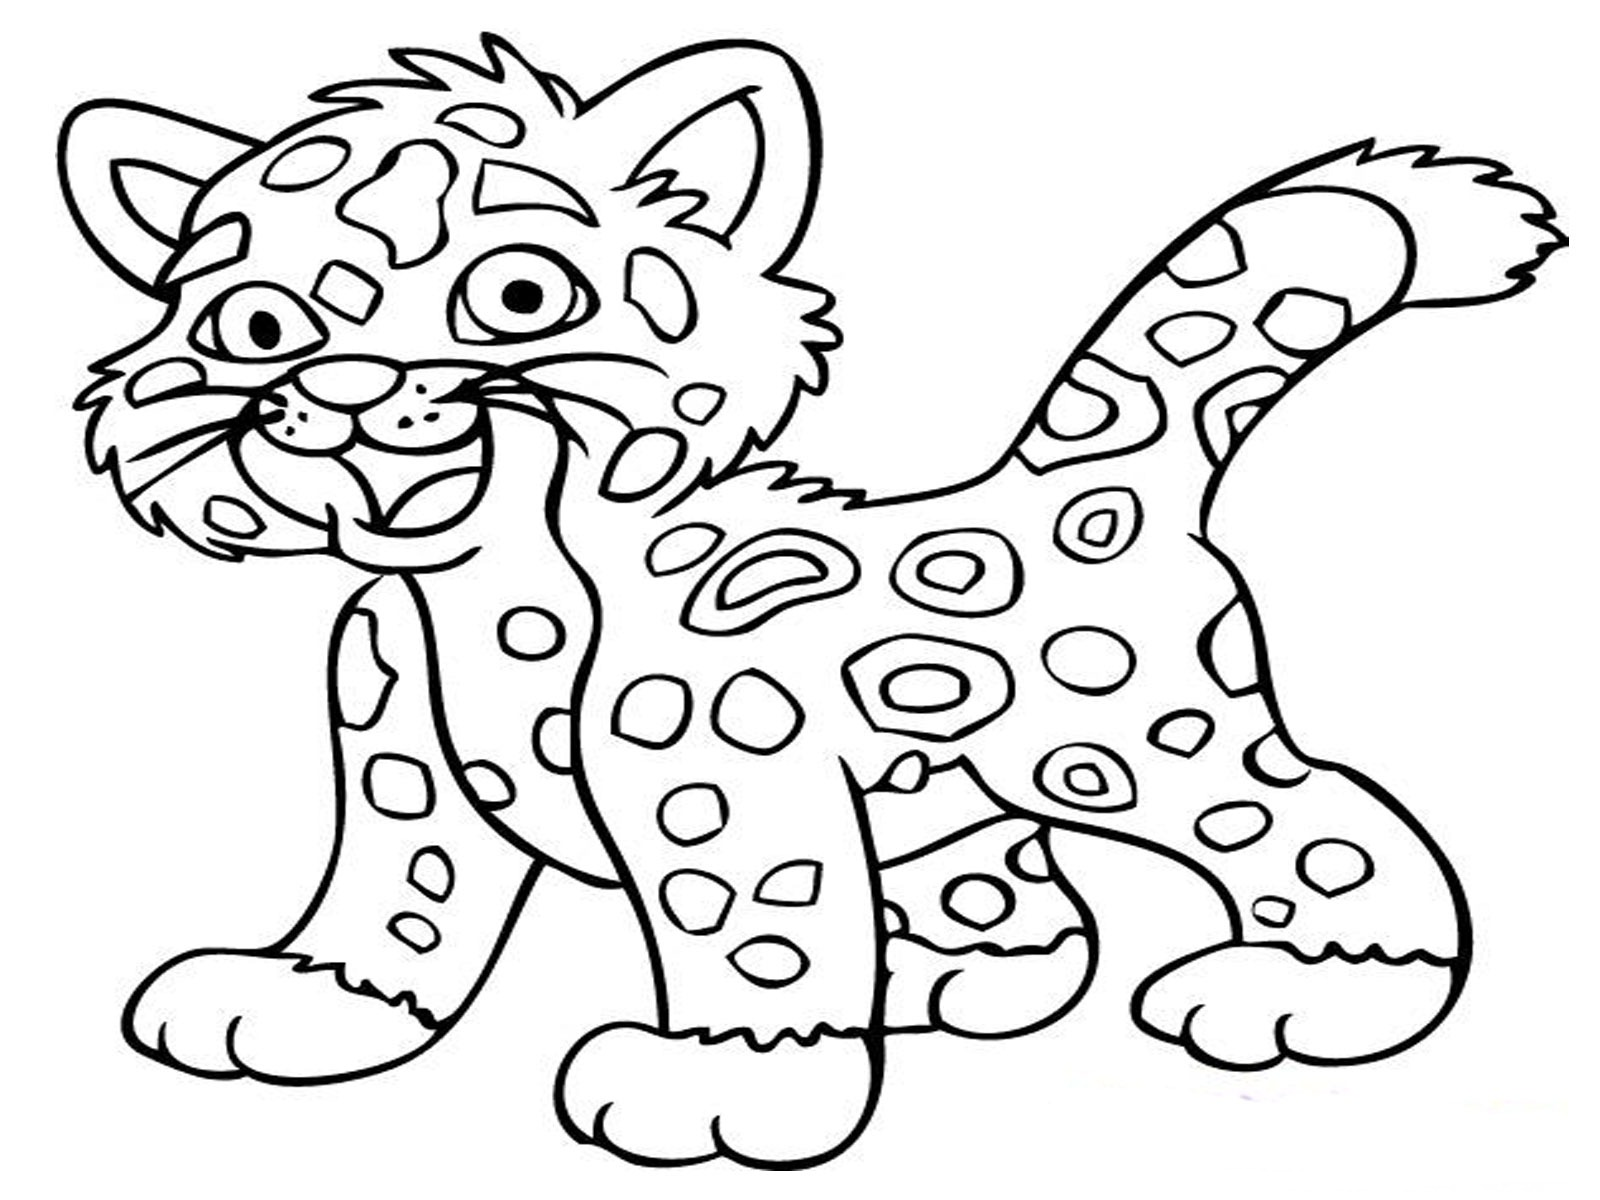 Animal coloring pages 9 coloring kids for Animal coloring pages printable free